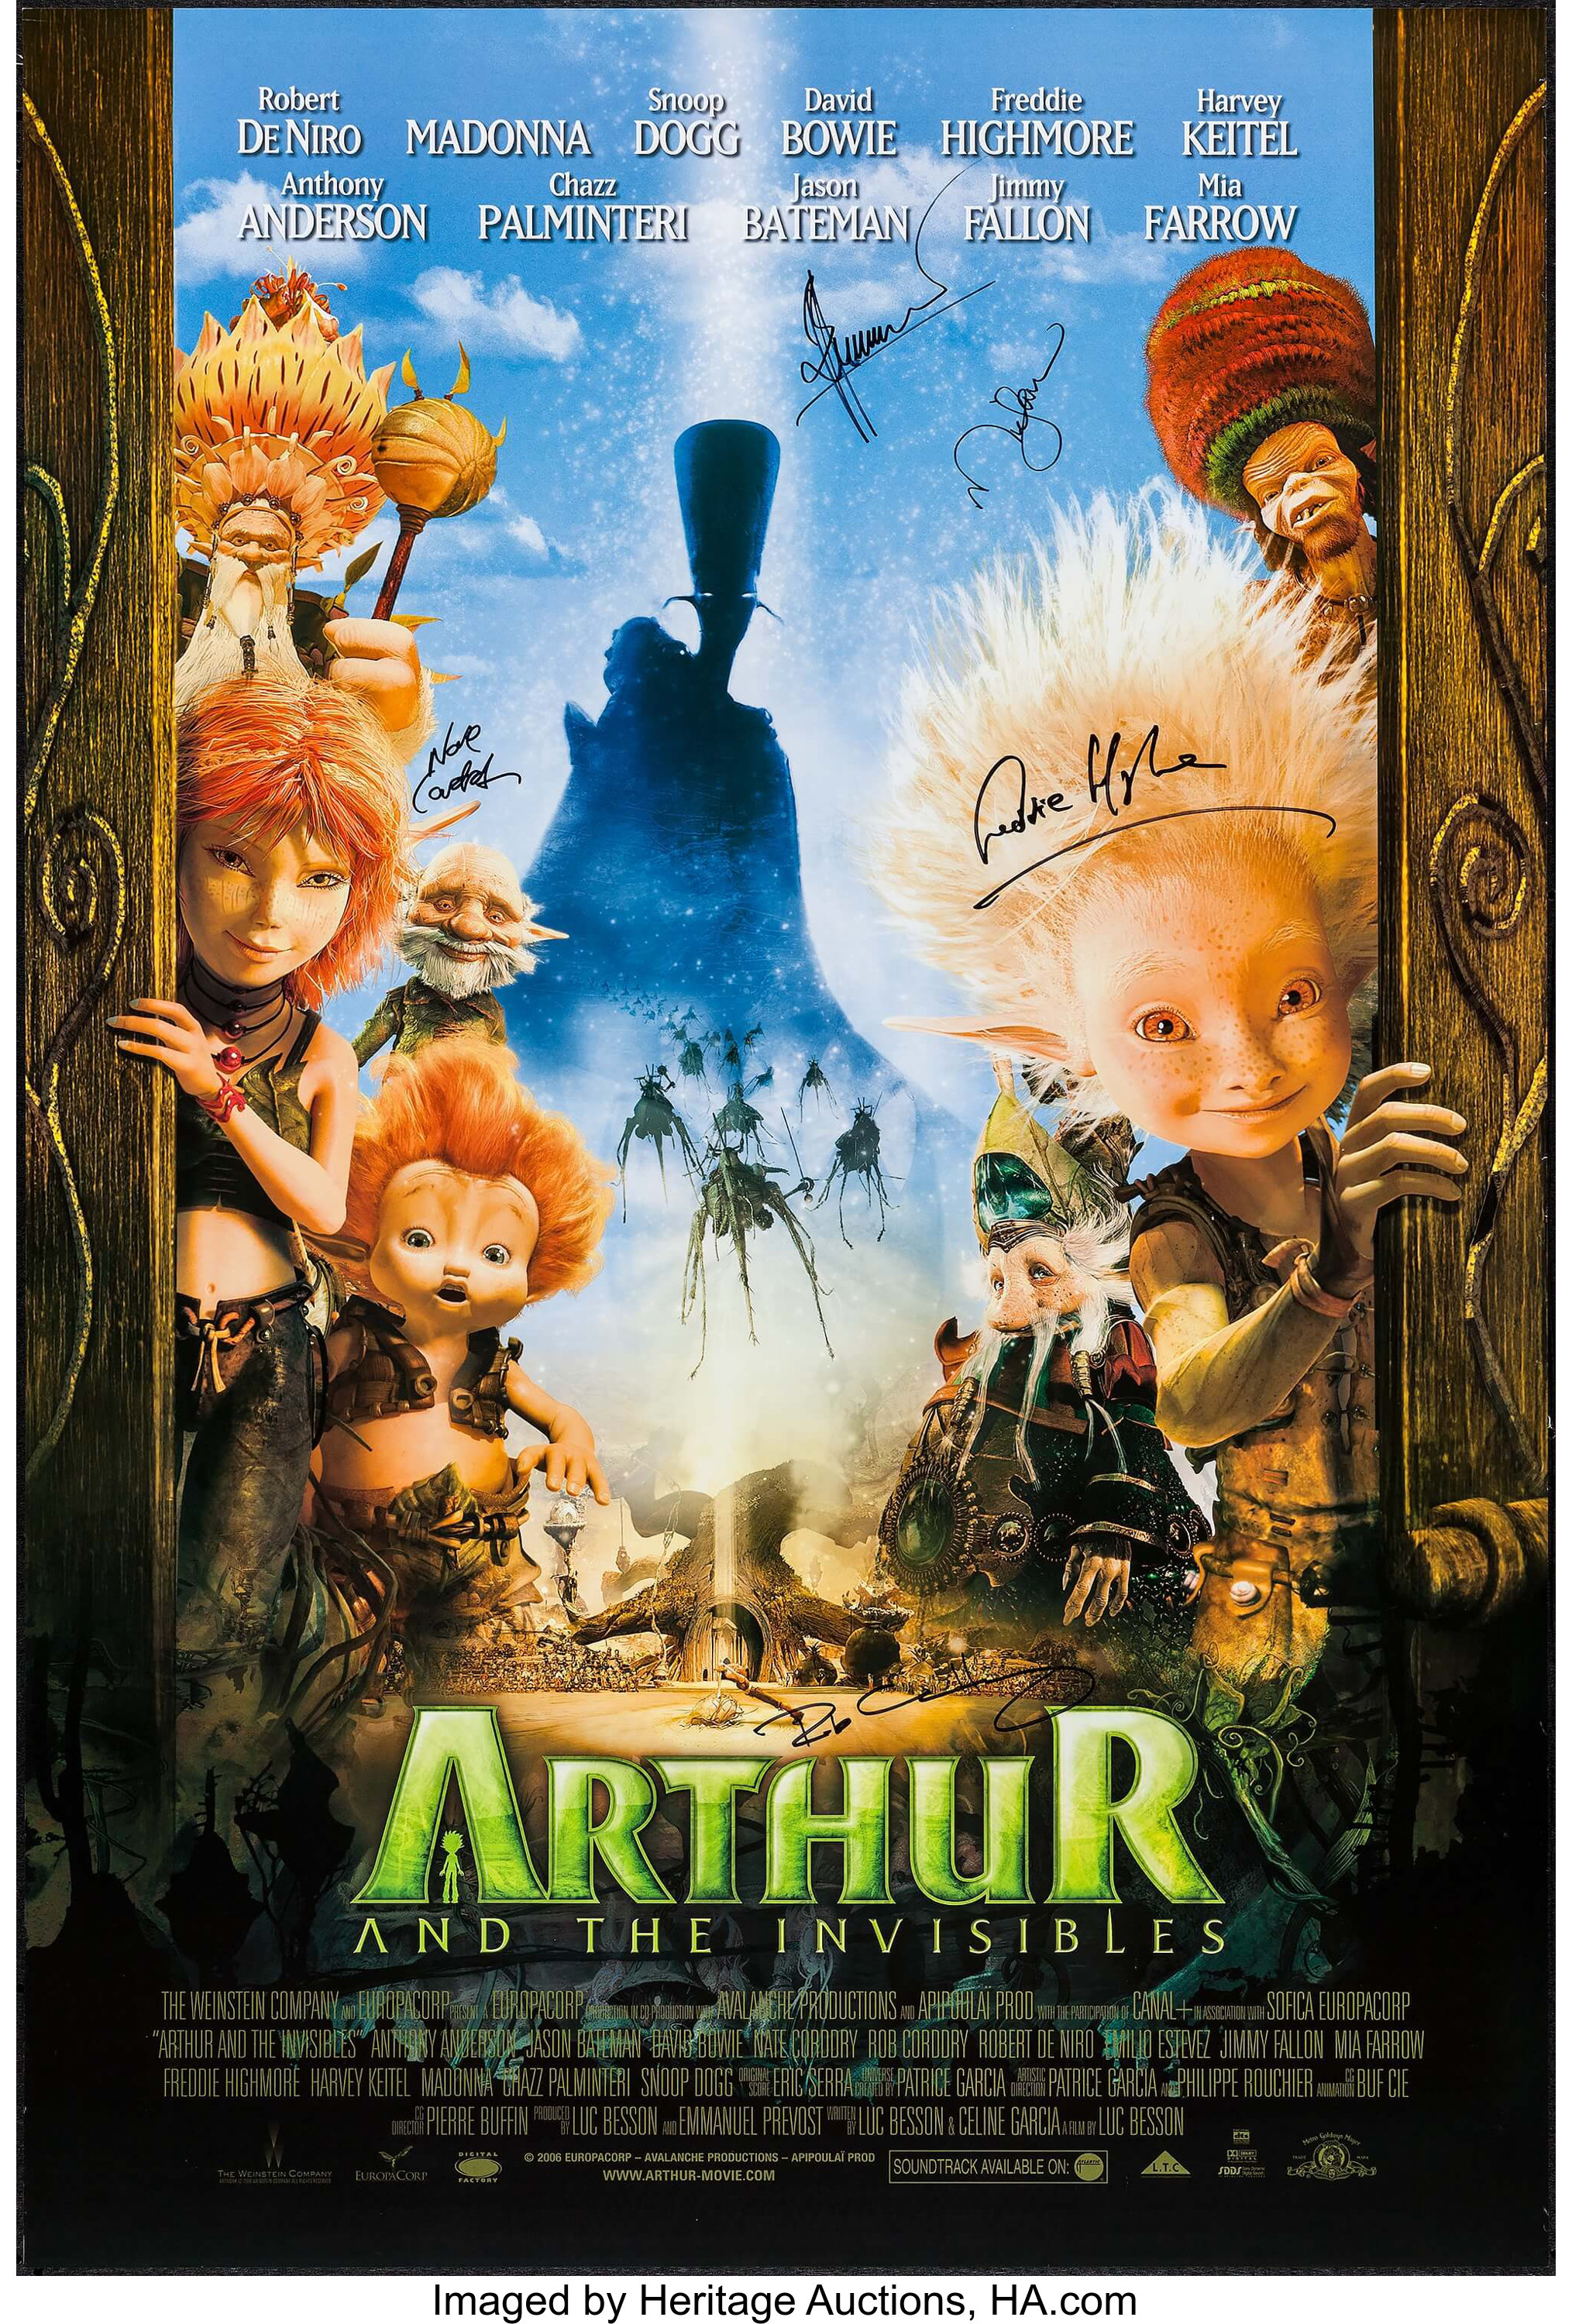 Arthur And The Invisibles Other Lot Mgm 2006 Autographed One Lot 52015 Heritage Auctions